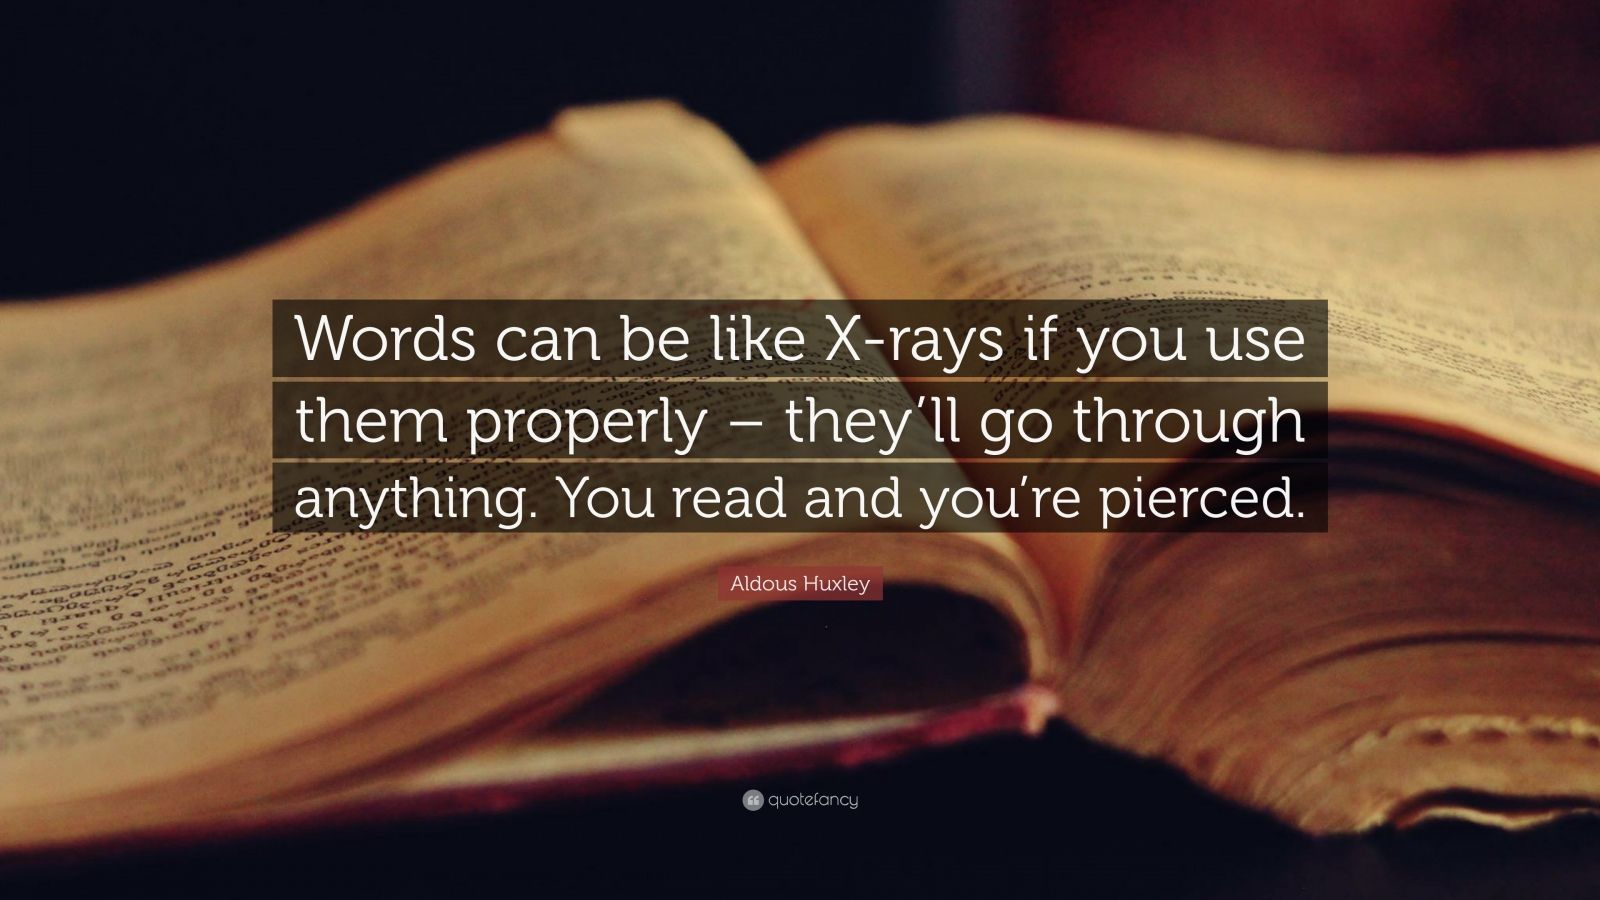 """Aldous Huxley Quote: """"Words can be like X-rays if you use them properly – they'll go through anything. You read and you're pierced."""""""